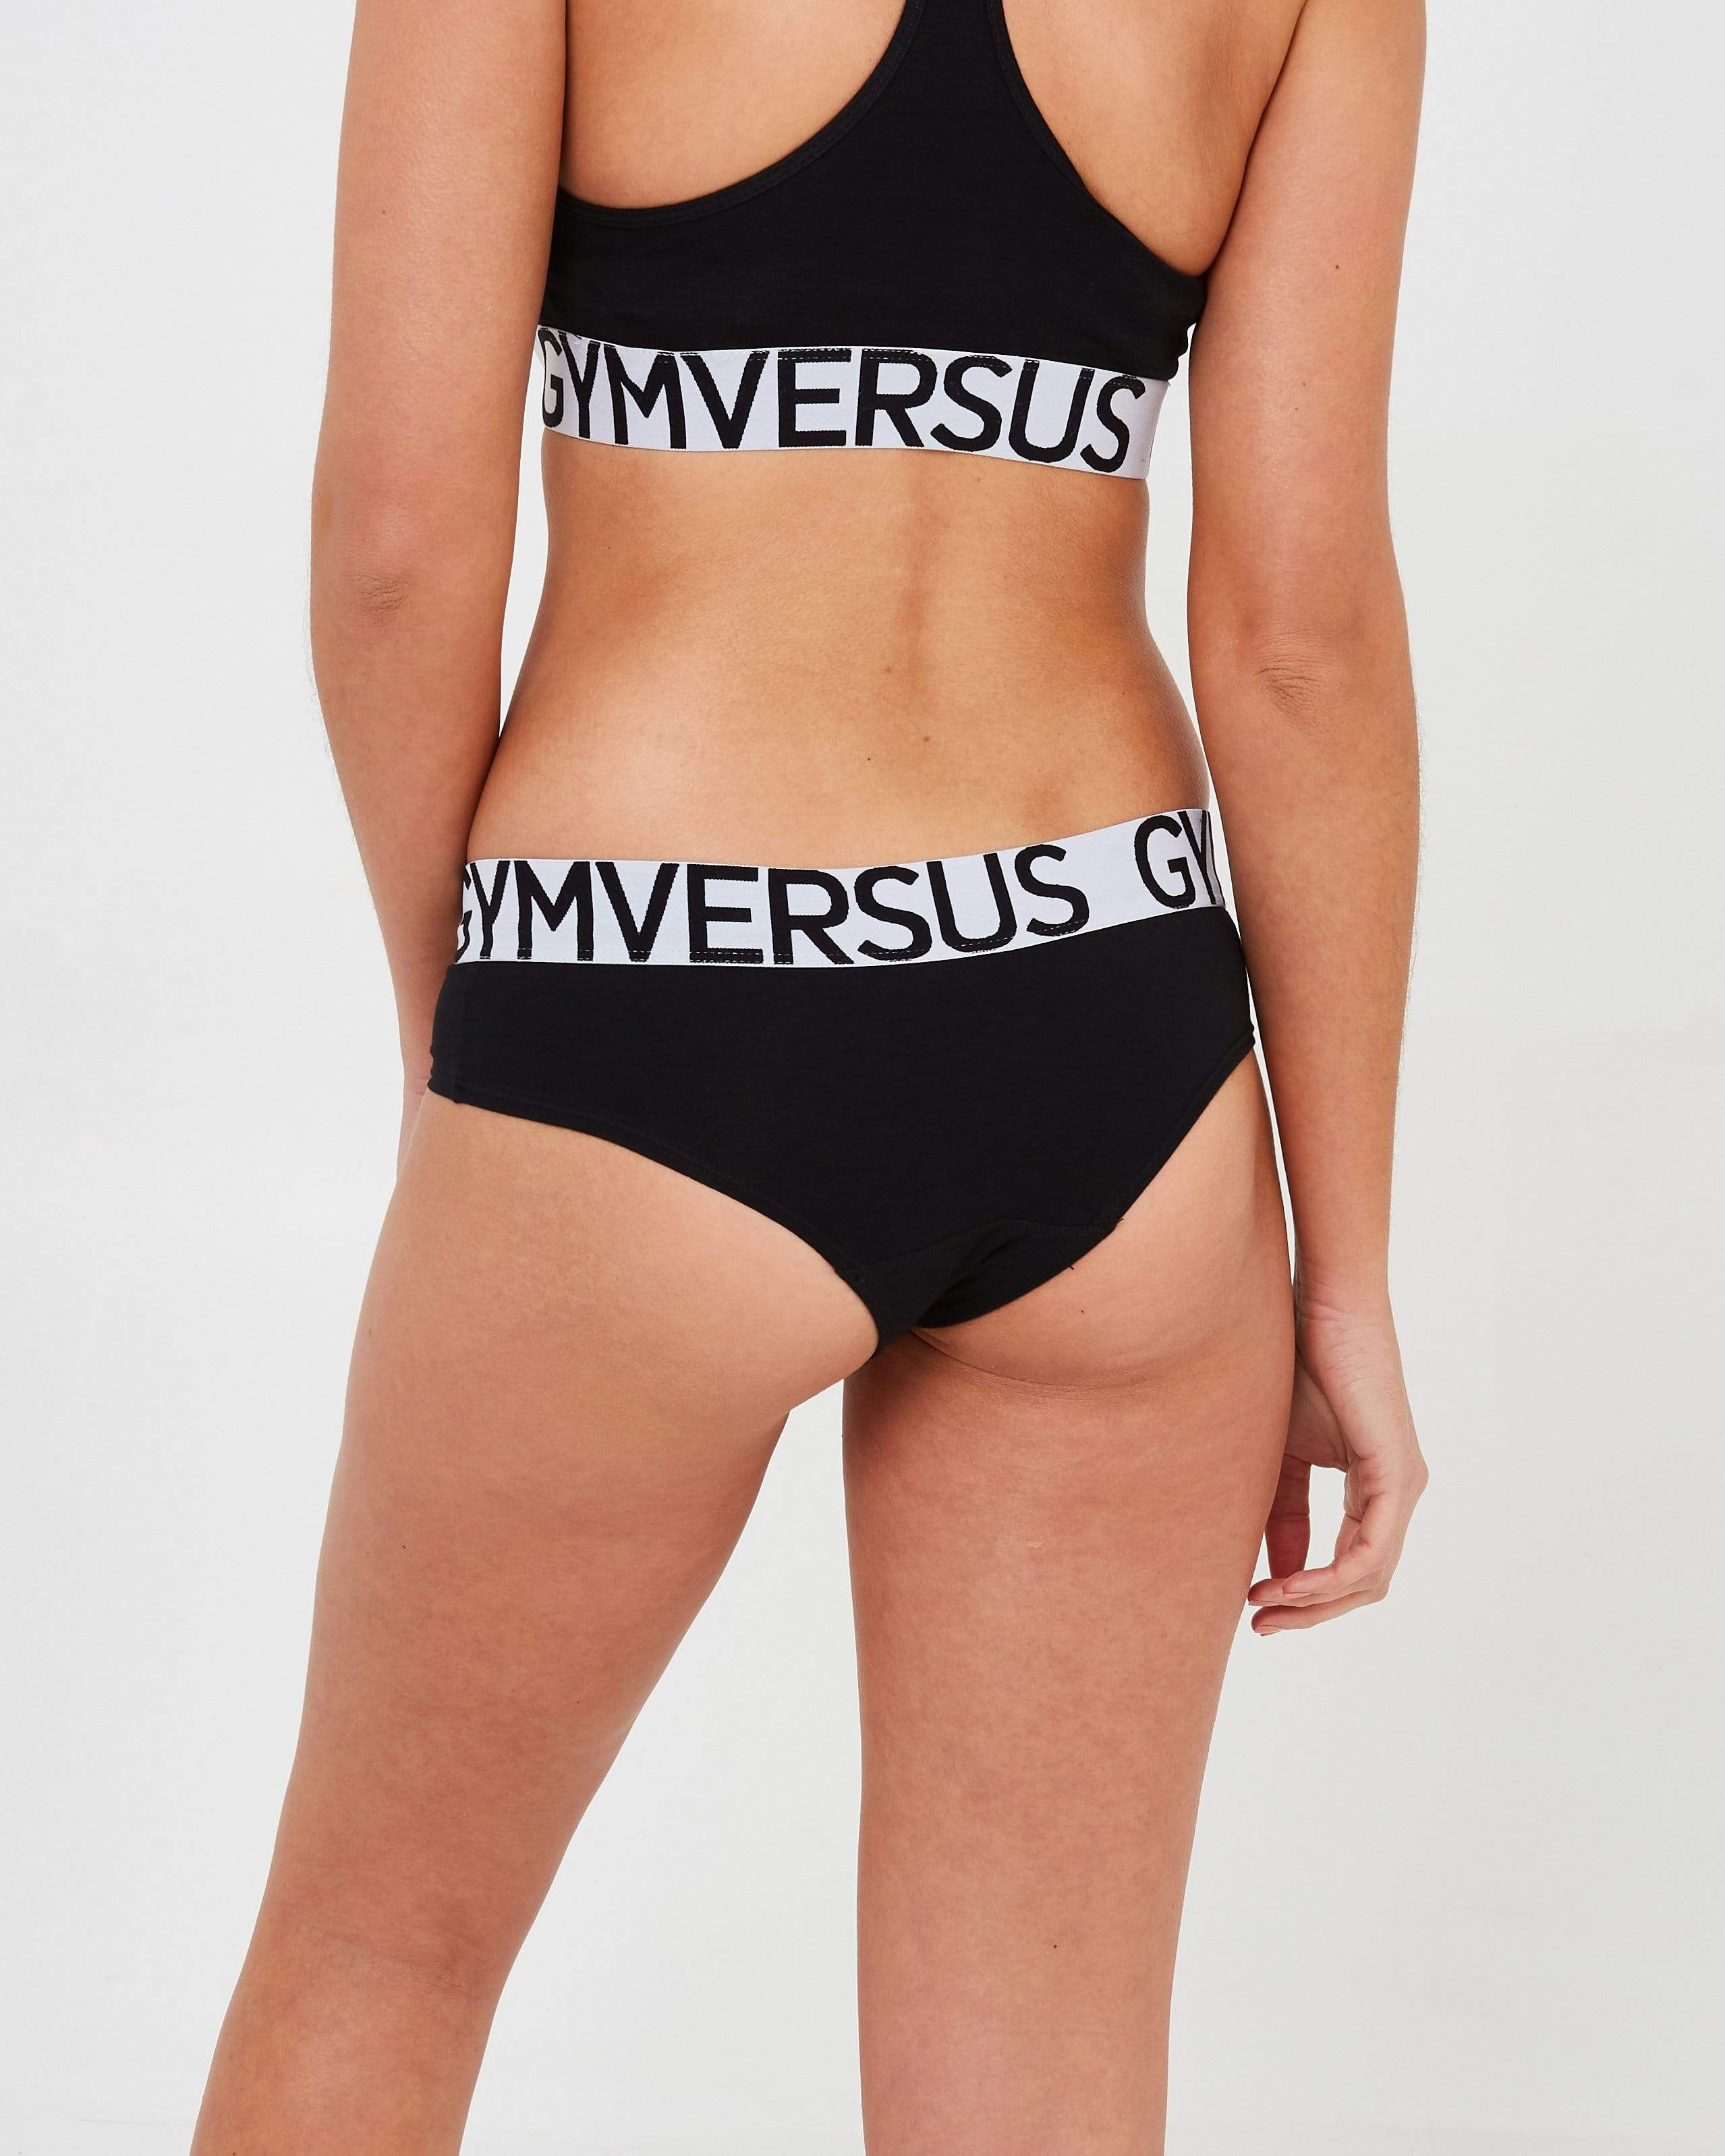 Jersey Brief - Black - GYMVERSUS